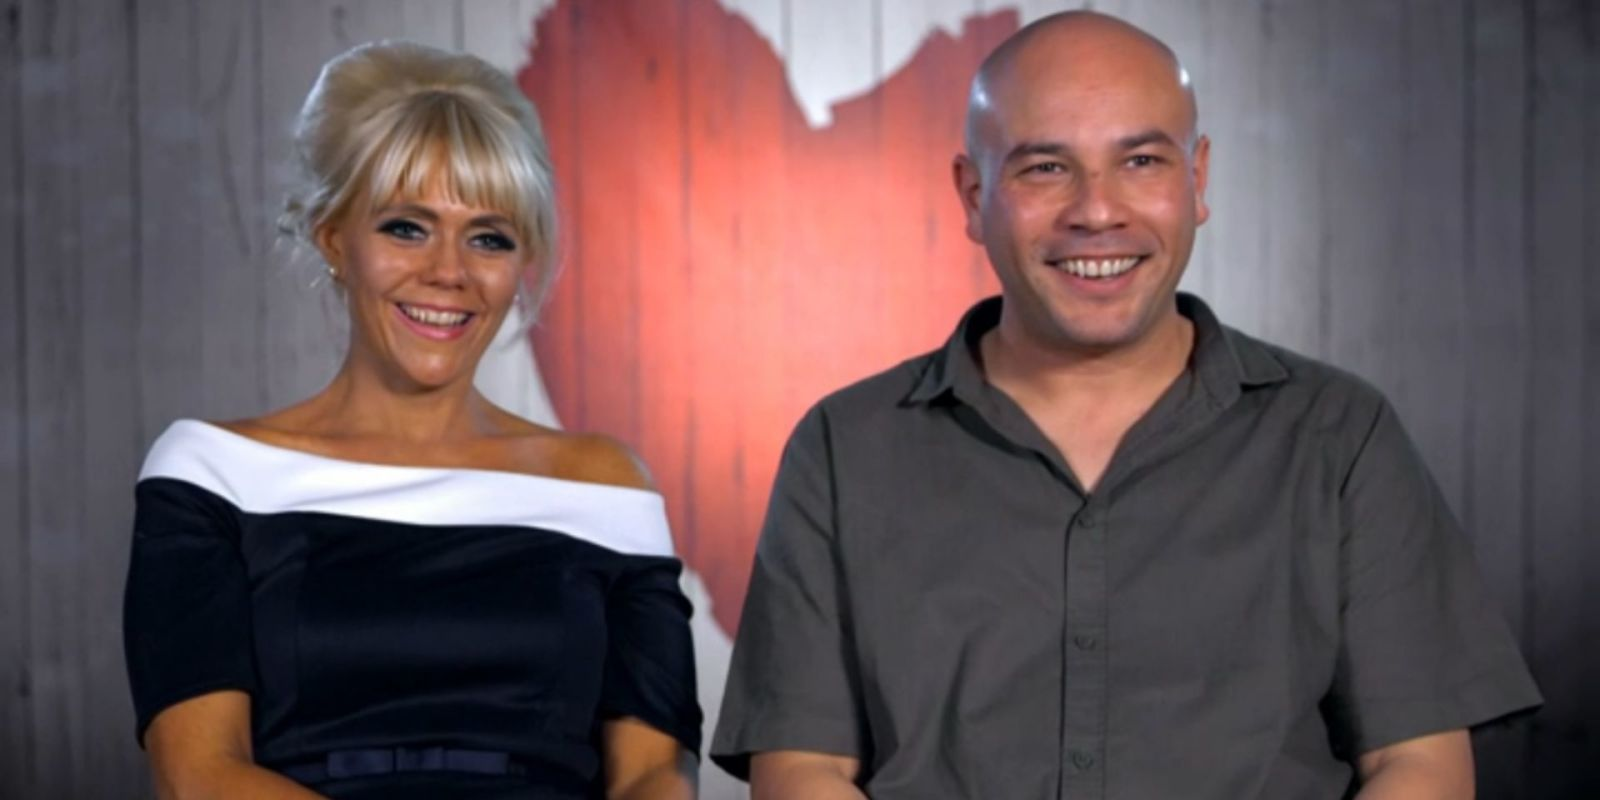 Vince and Anna on First Dates